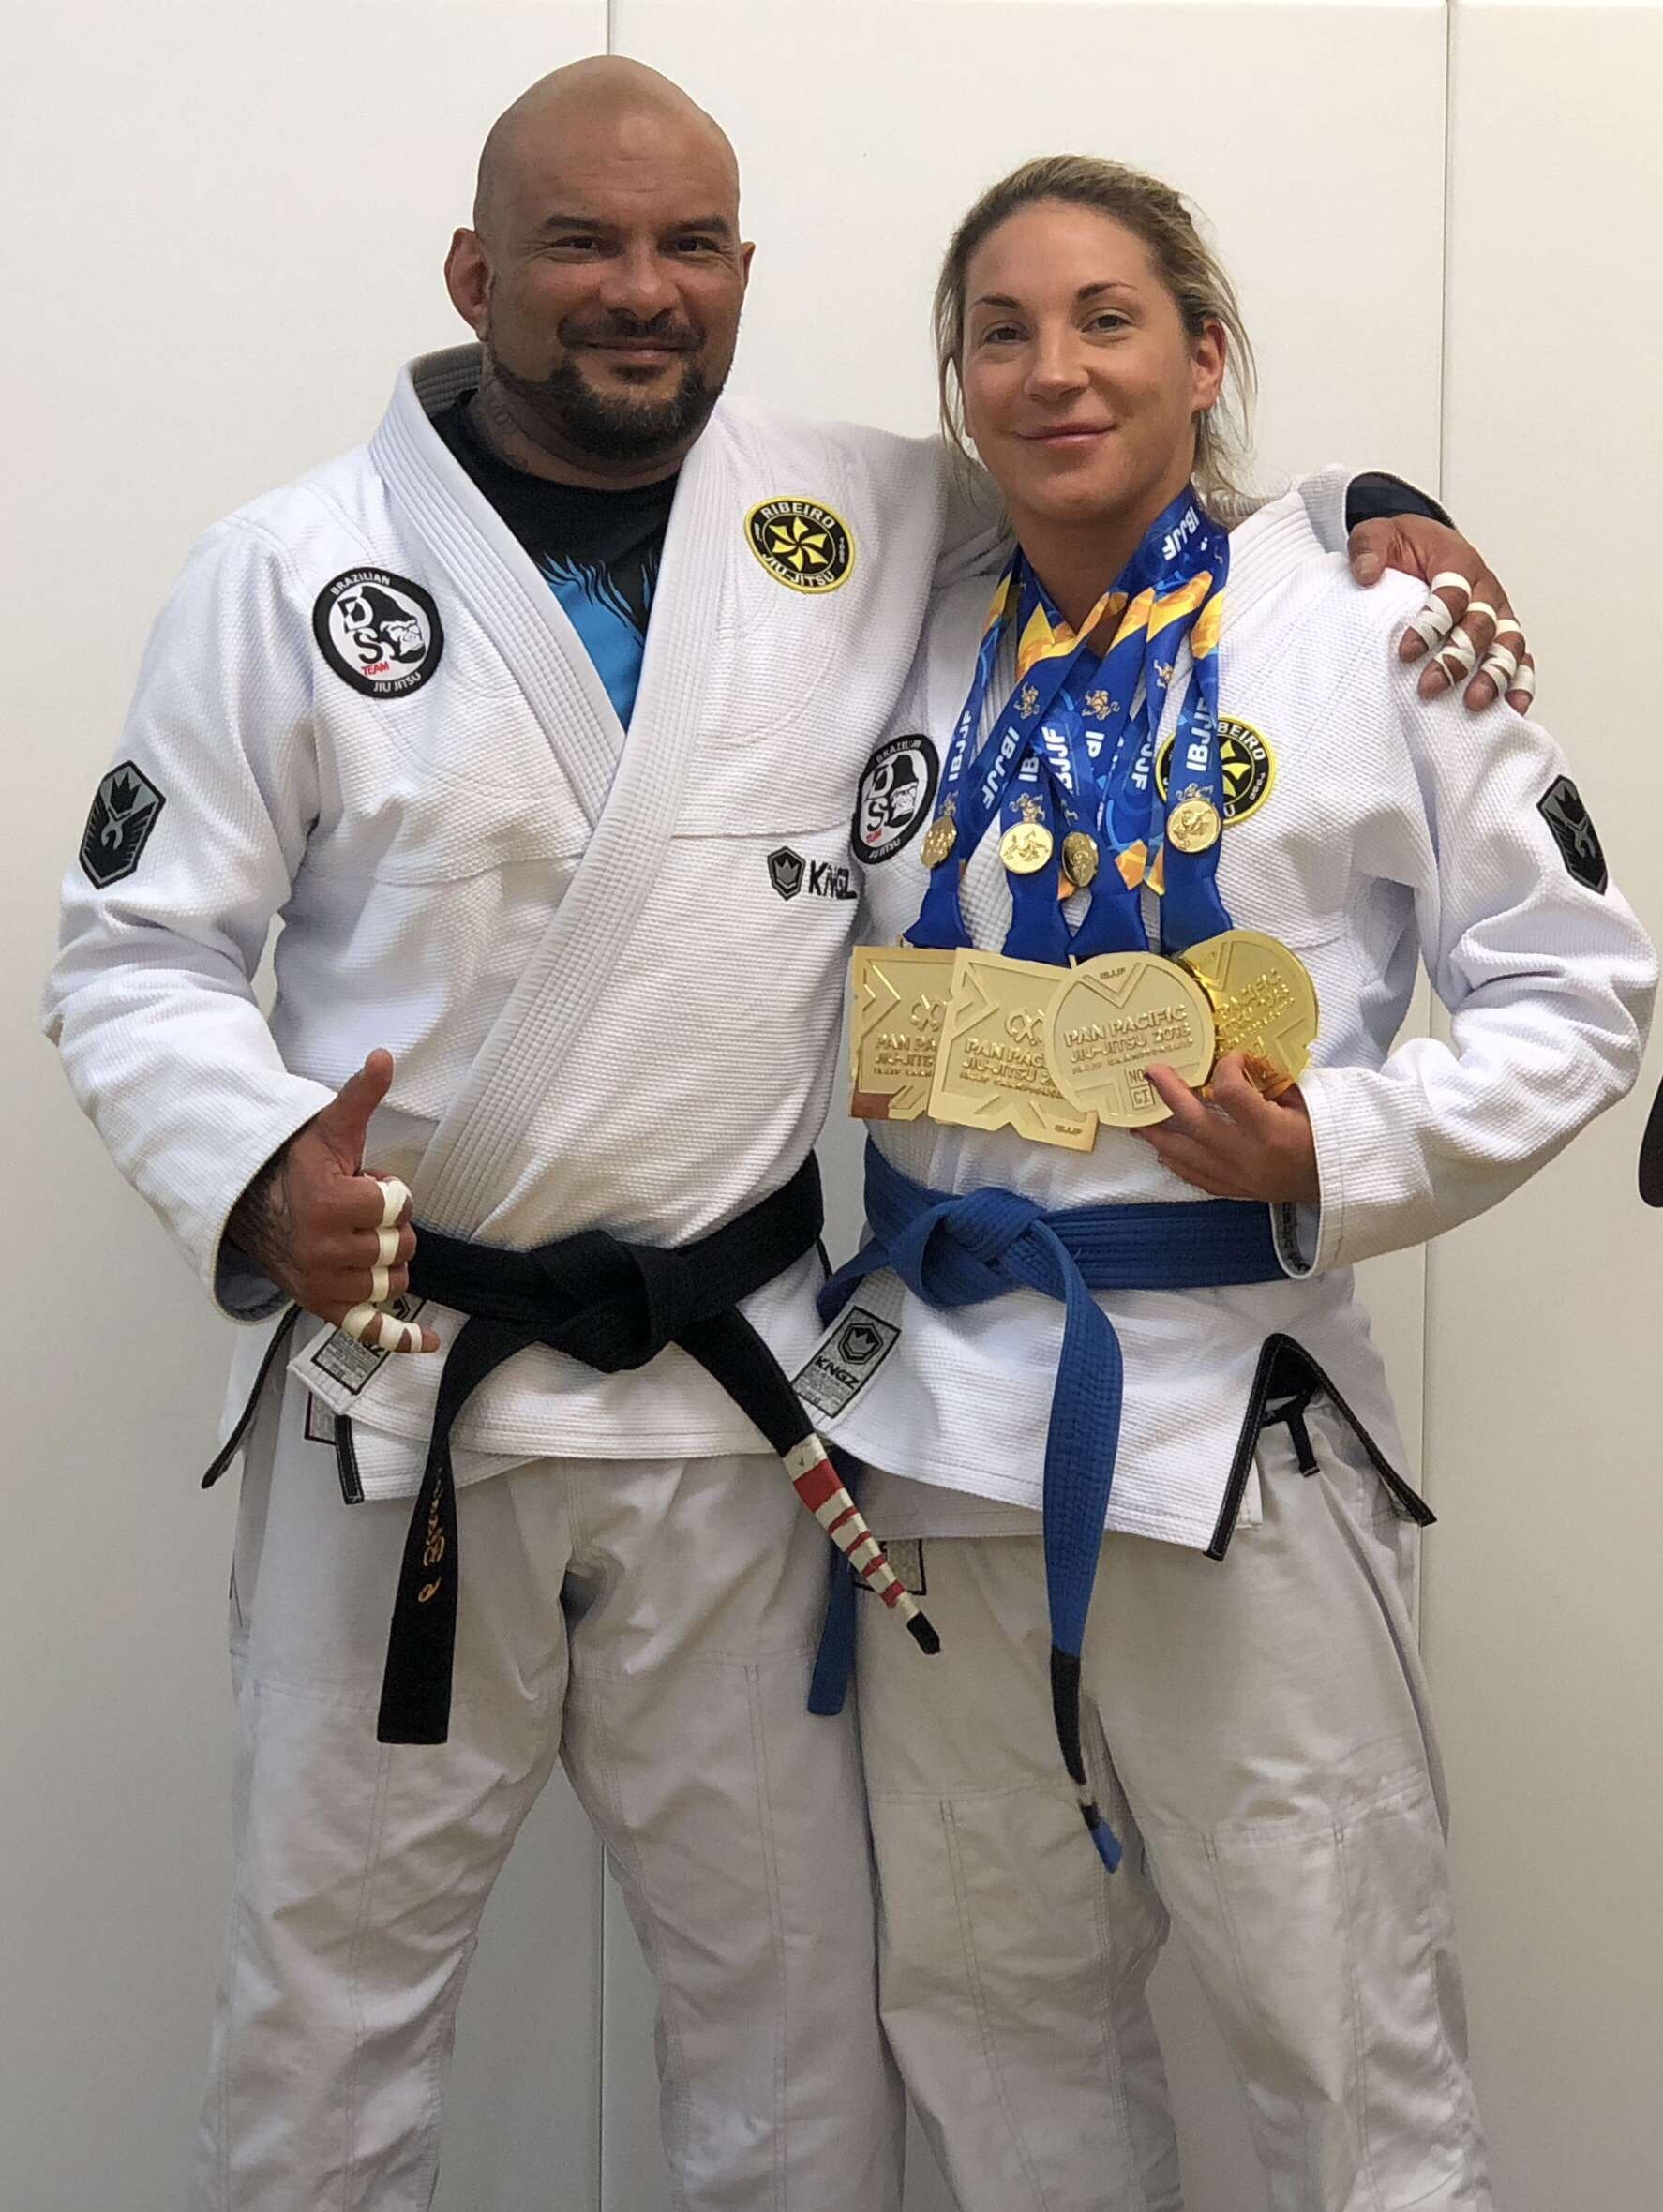 ALIX BARTHOLOMEW - Alix first represented New Zealand in Taekwondo. Over the past two years she has begun training and competing in Brazilian Jiu-Jitsu, working with world renowned, 4th Degree Black Belt, Douglas Santos (seen here with Alix) at the Douglas Santos Team School.She's achieved impressive results already, winning Gold in multiple divisions at the Pan Pacific Jiu-Jitsu IBJJF Championship in October 2018 and the Sydney International Open, also in 2018.Alix now has her sights set on the World Championship in Las Vegas in August 2019.Good luck, Alix.